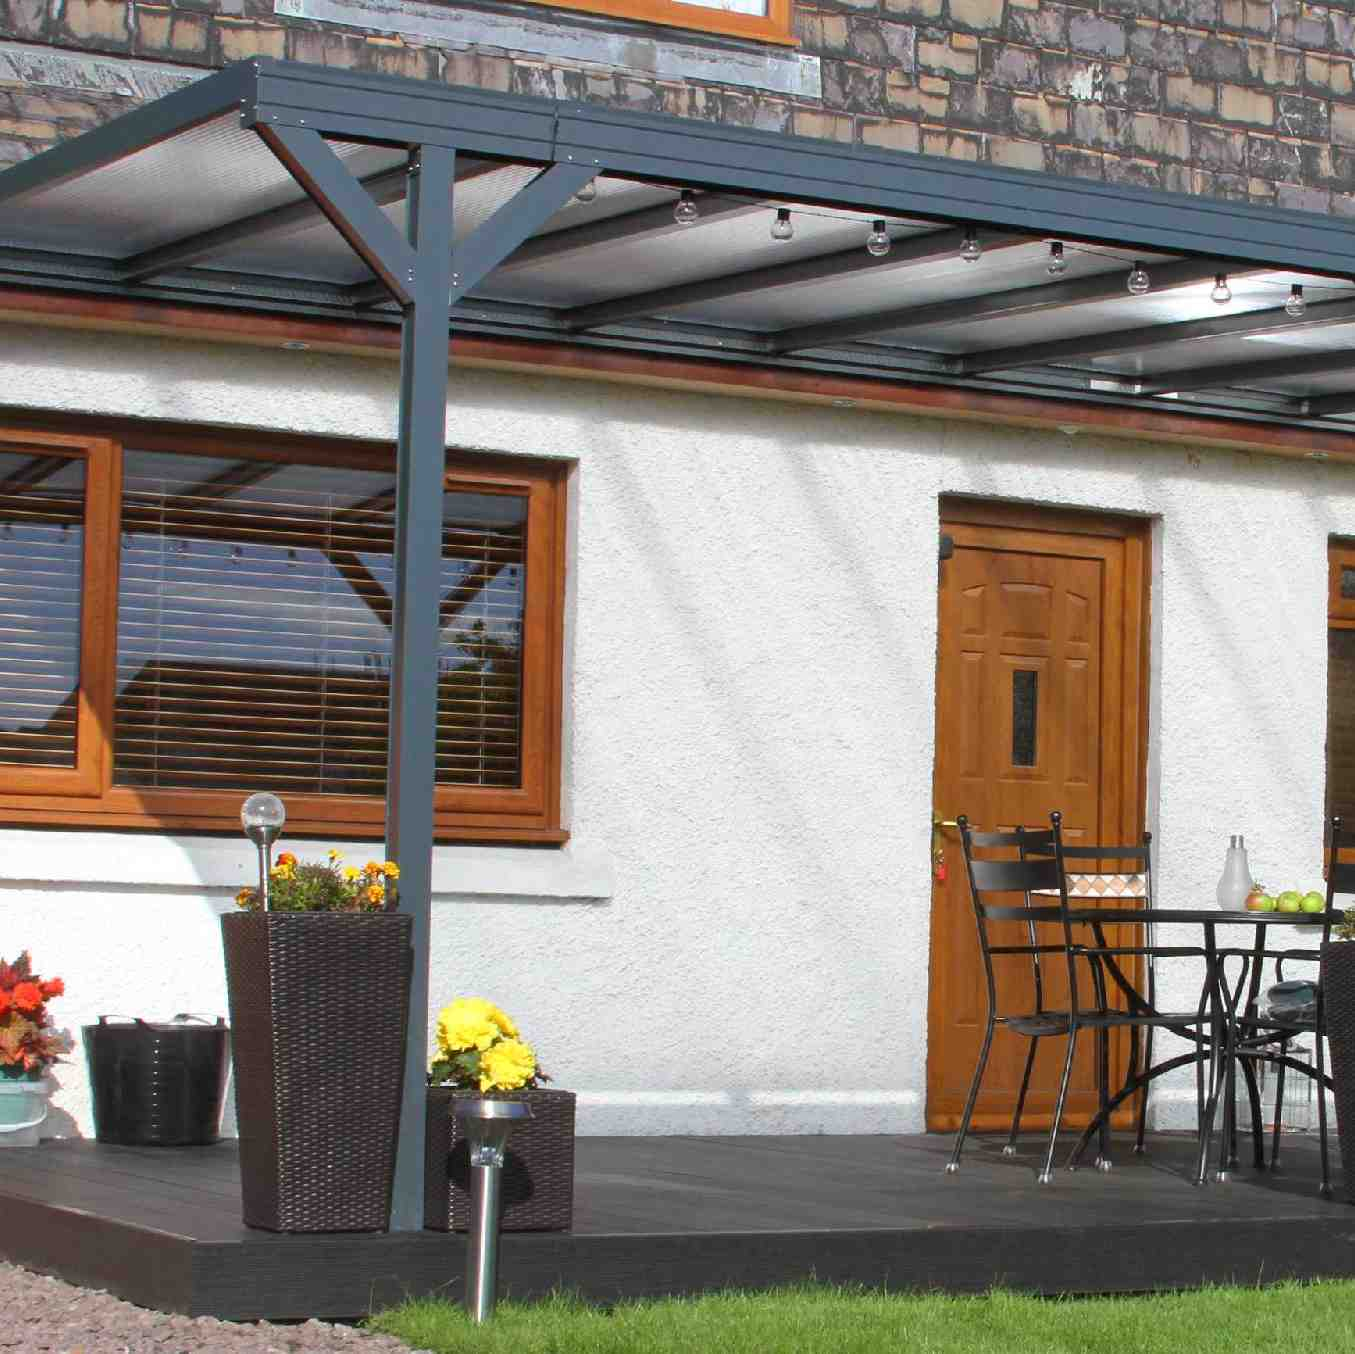 Omega Verandah, Anthracite Grey, 16mm Polycarbonate Glazing - 2.1m (W) x 3.5m (P), (2) Supporting Posts